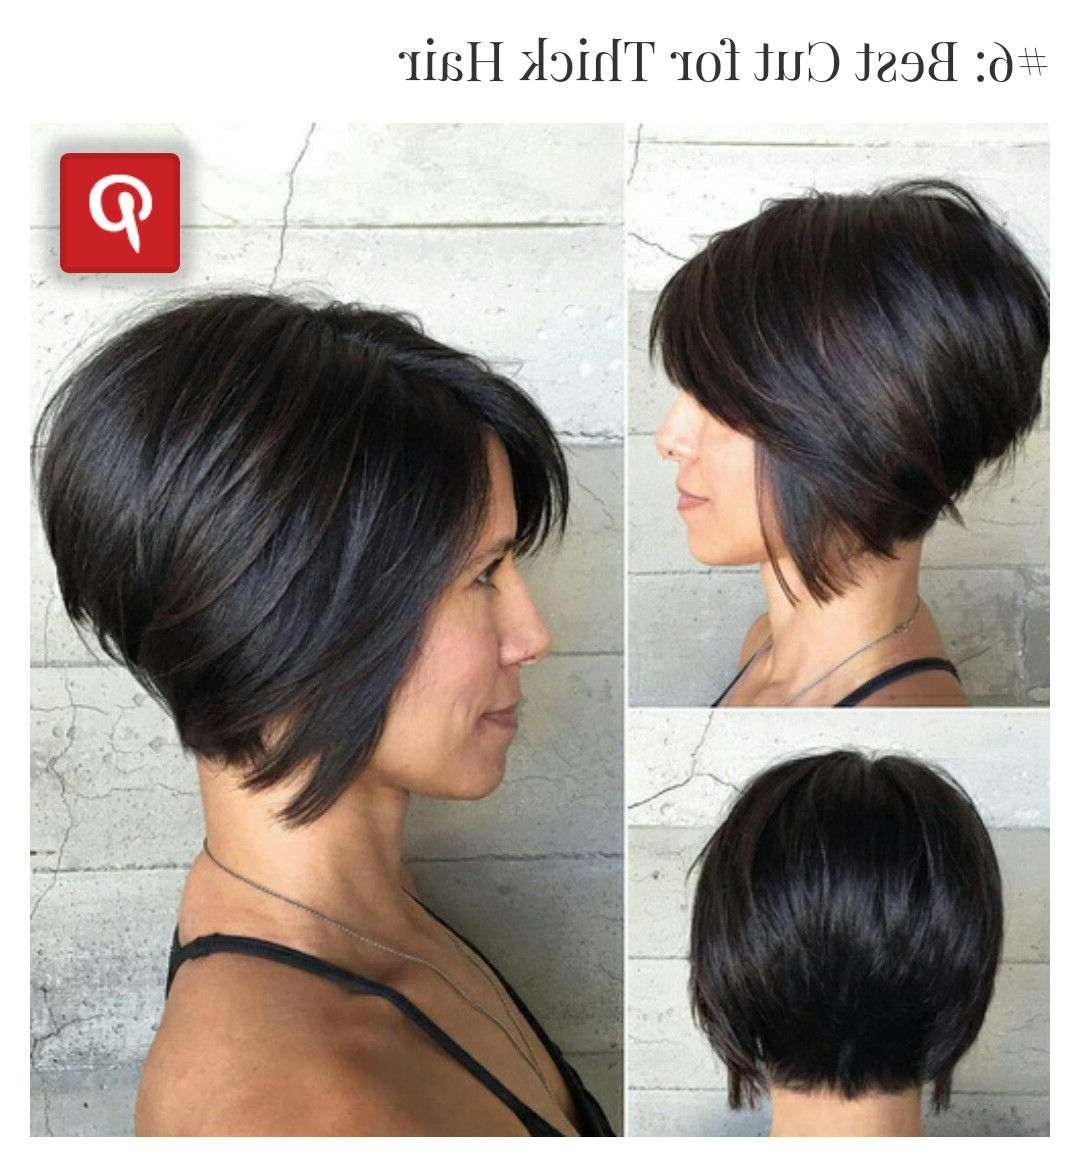 Pintammy Berger On Inverted Bob | Pinterest | Short Hair Styles Pertaining To Sleek Rounded Inverted Bob Hairstyles (View 12 of 20)